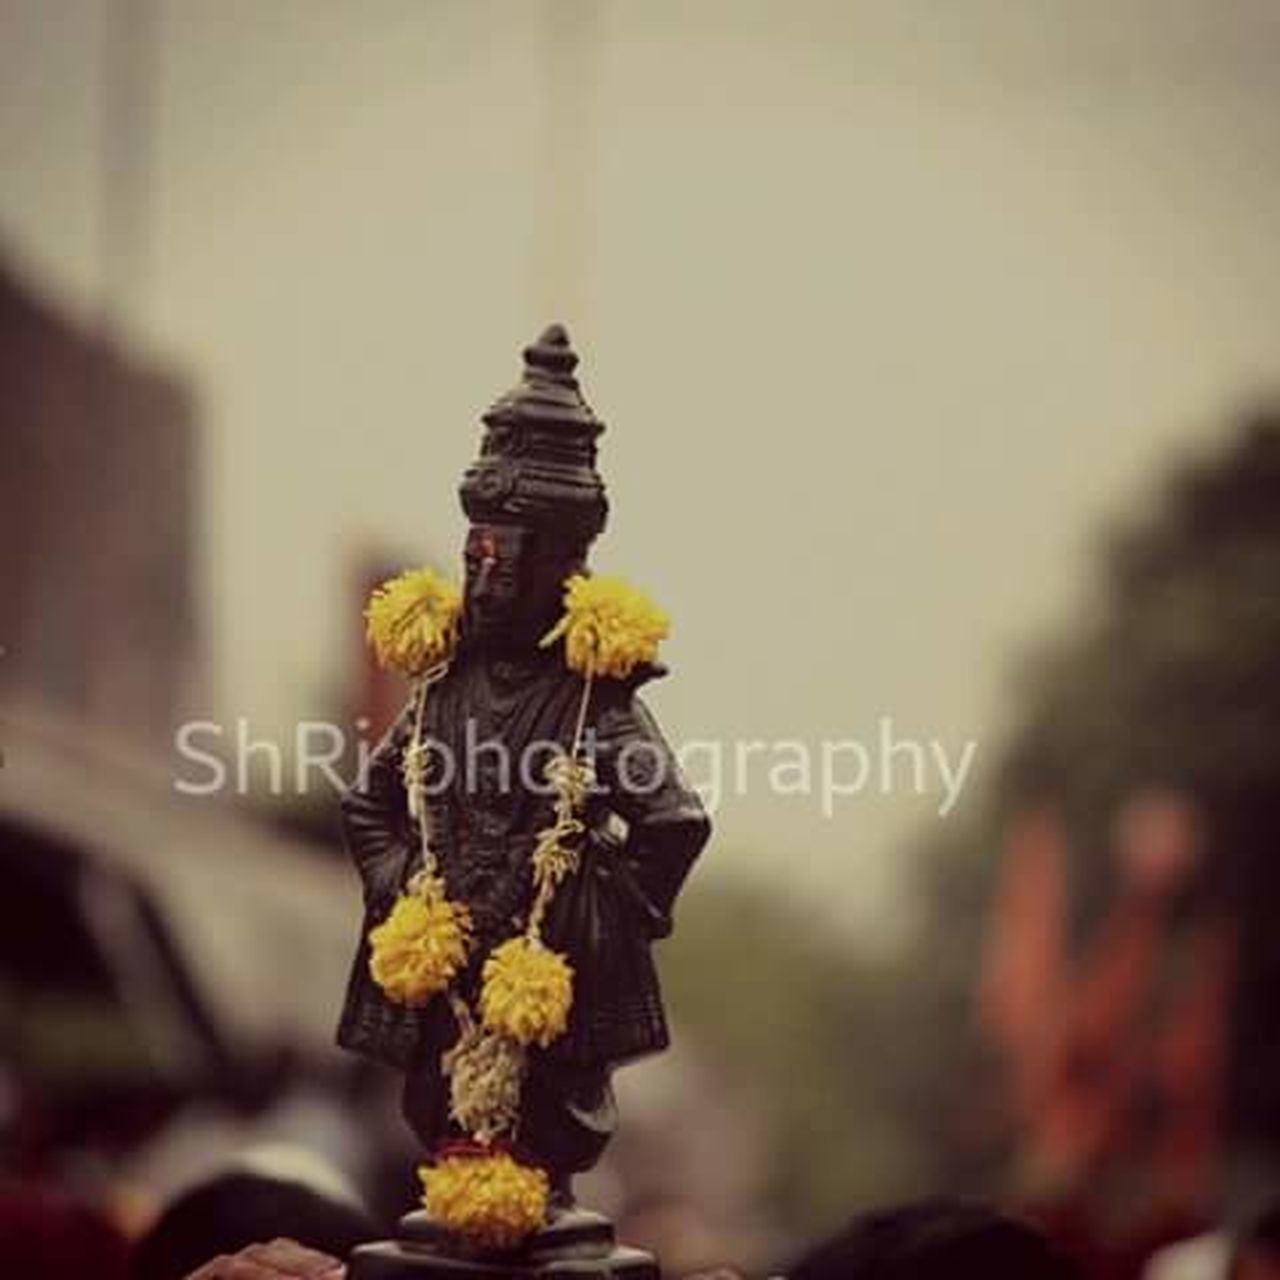 religion, spirituality, crown, ceremony, celebration, no people, statue, day, flower, outdoors, close-up